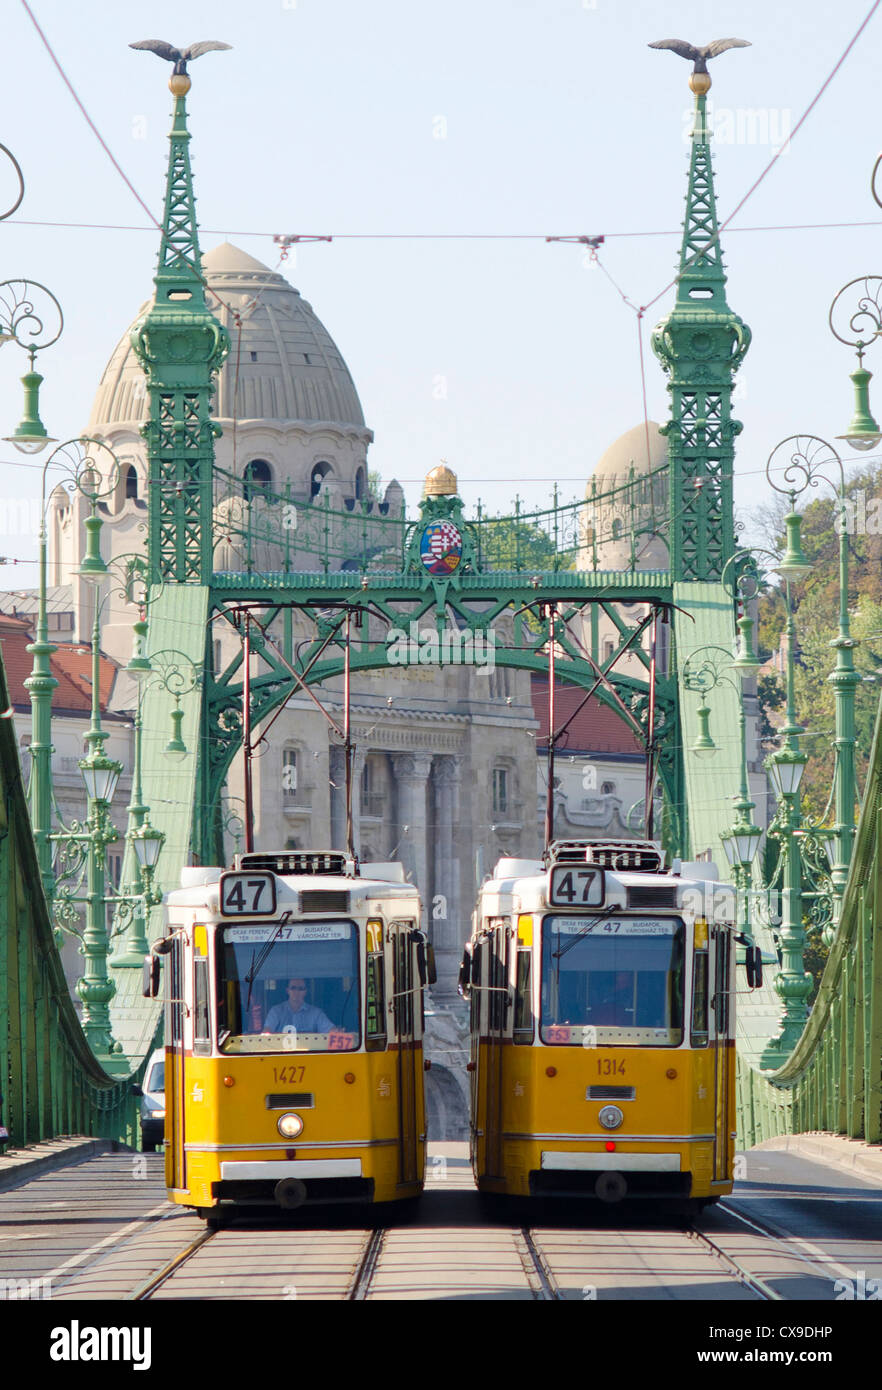 Two trams passing on the Green or Liberty bridge in Budapest, Hungary (Szabadság híd). Stock Photo